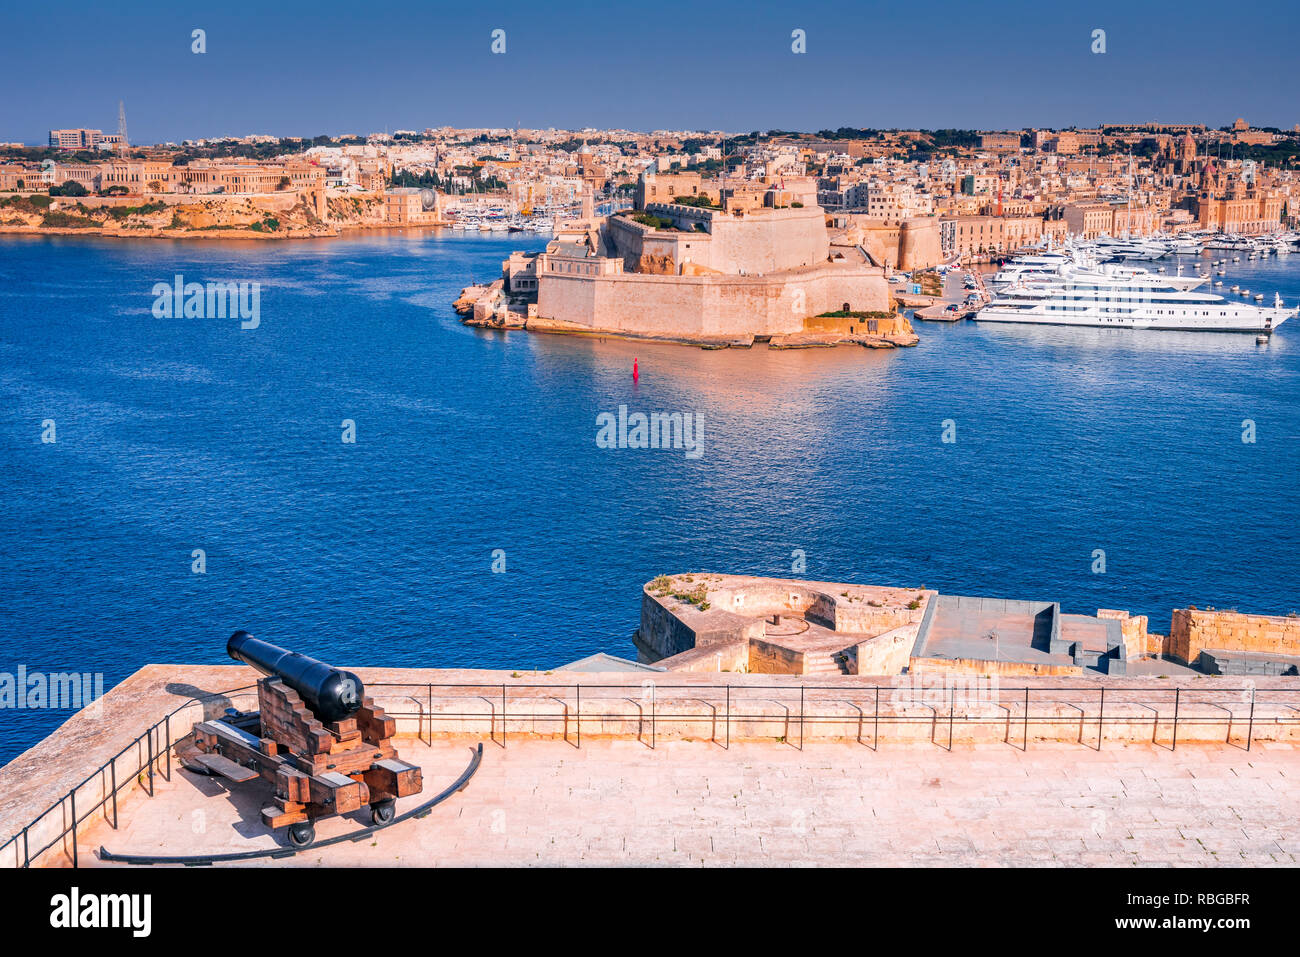 Malta, view of Fort St. Angelo from Valletta, Grand Harbour of maltese island. - Stock Image